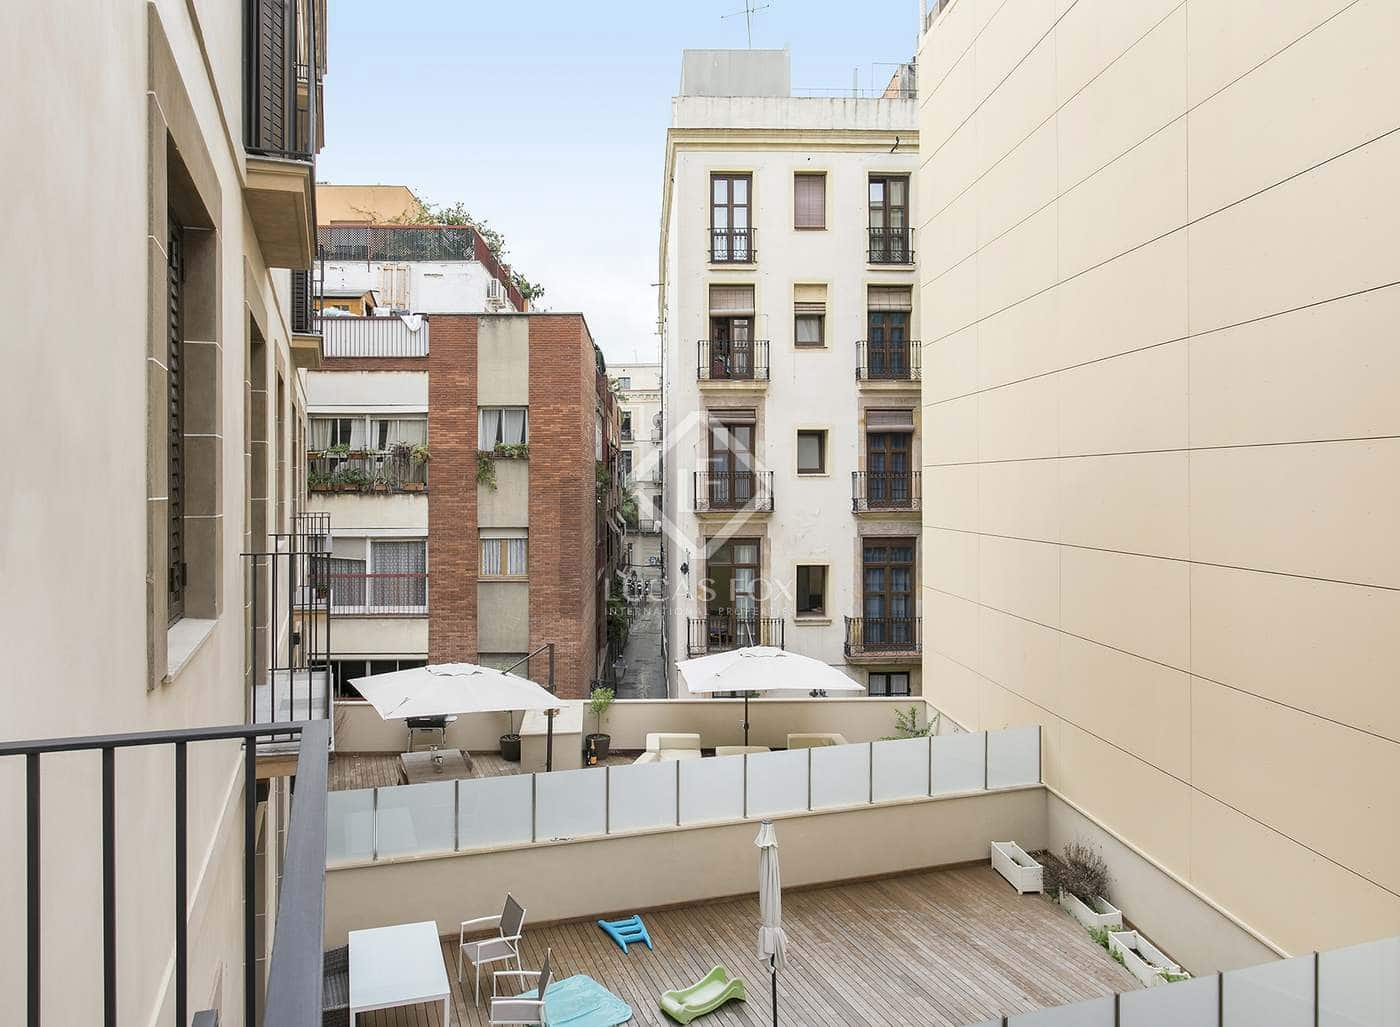 1 bedroom Apartment for rent in Barcelona city with pool ...